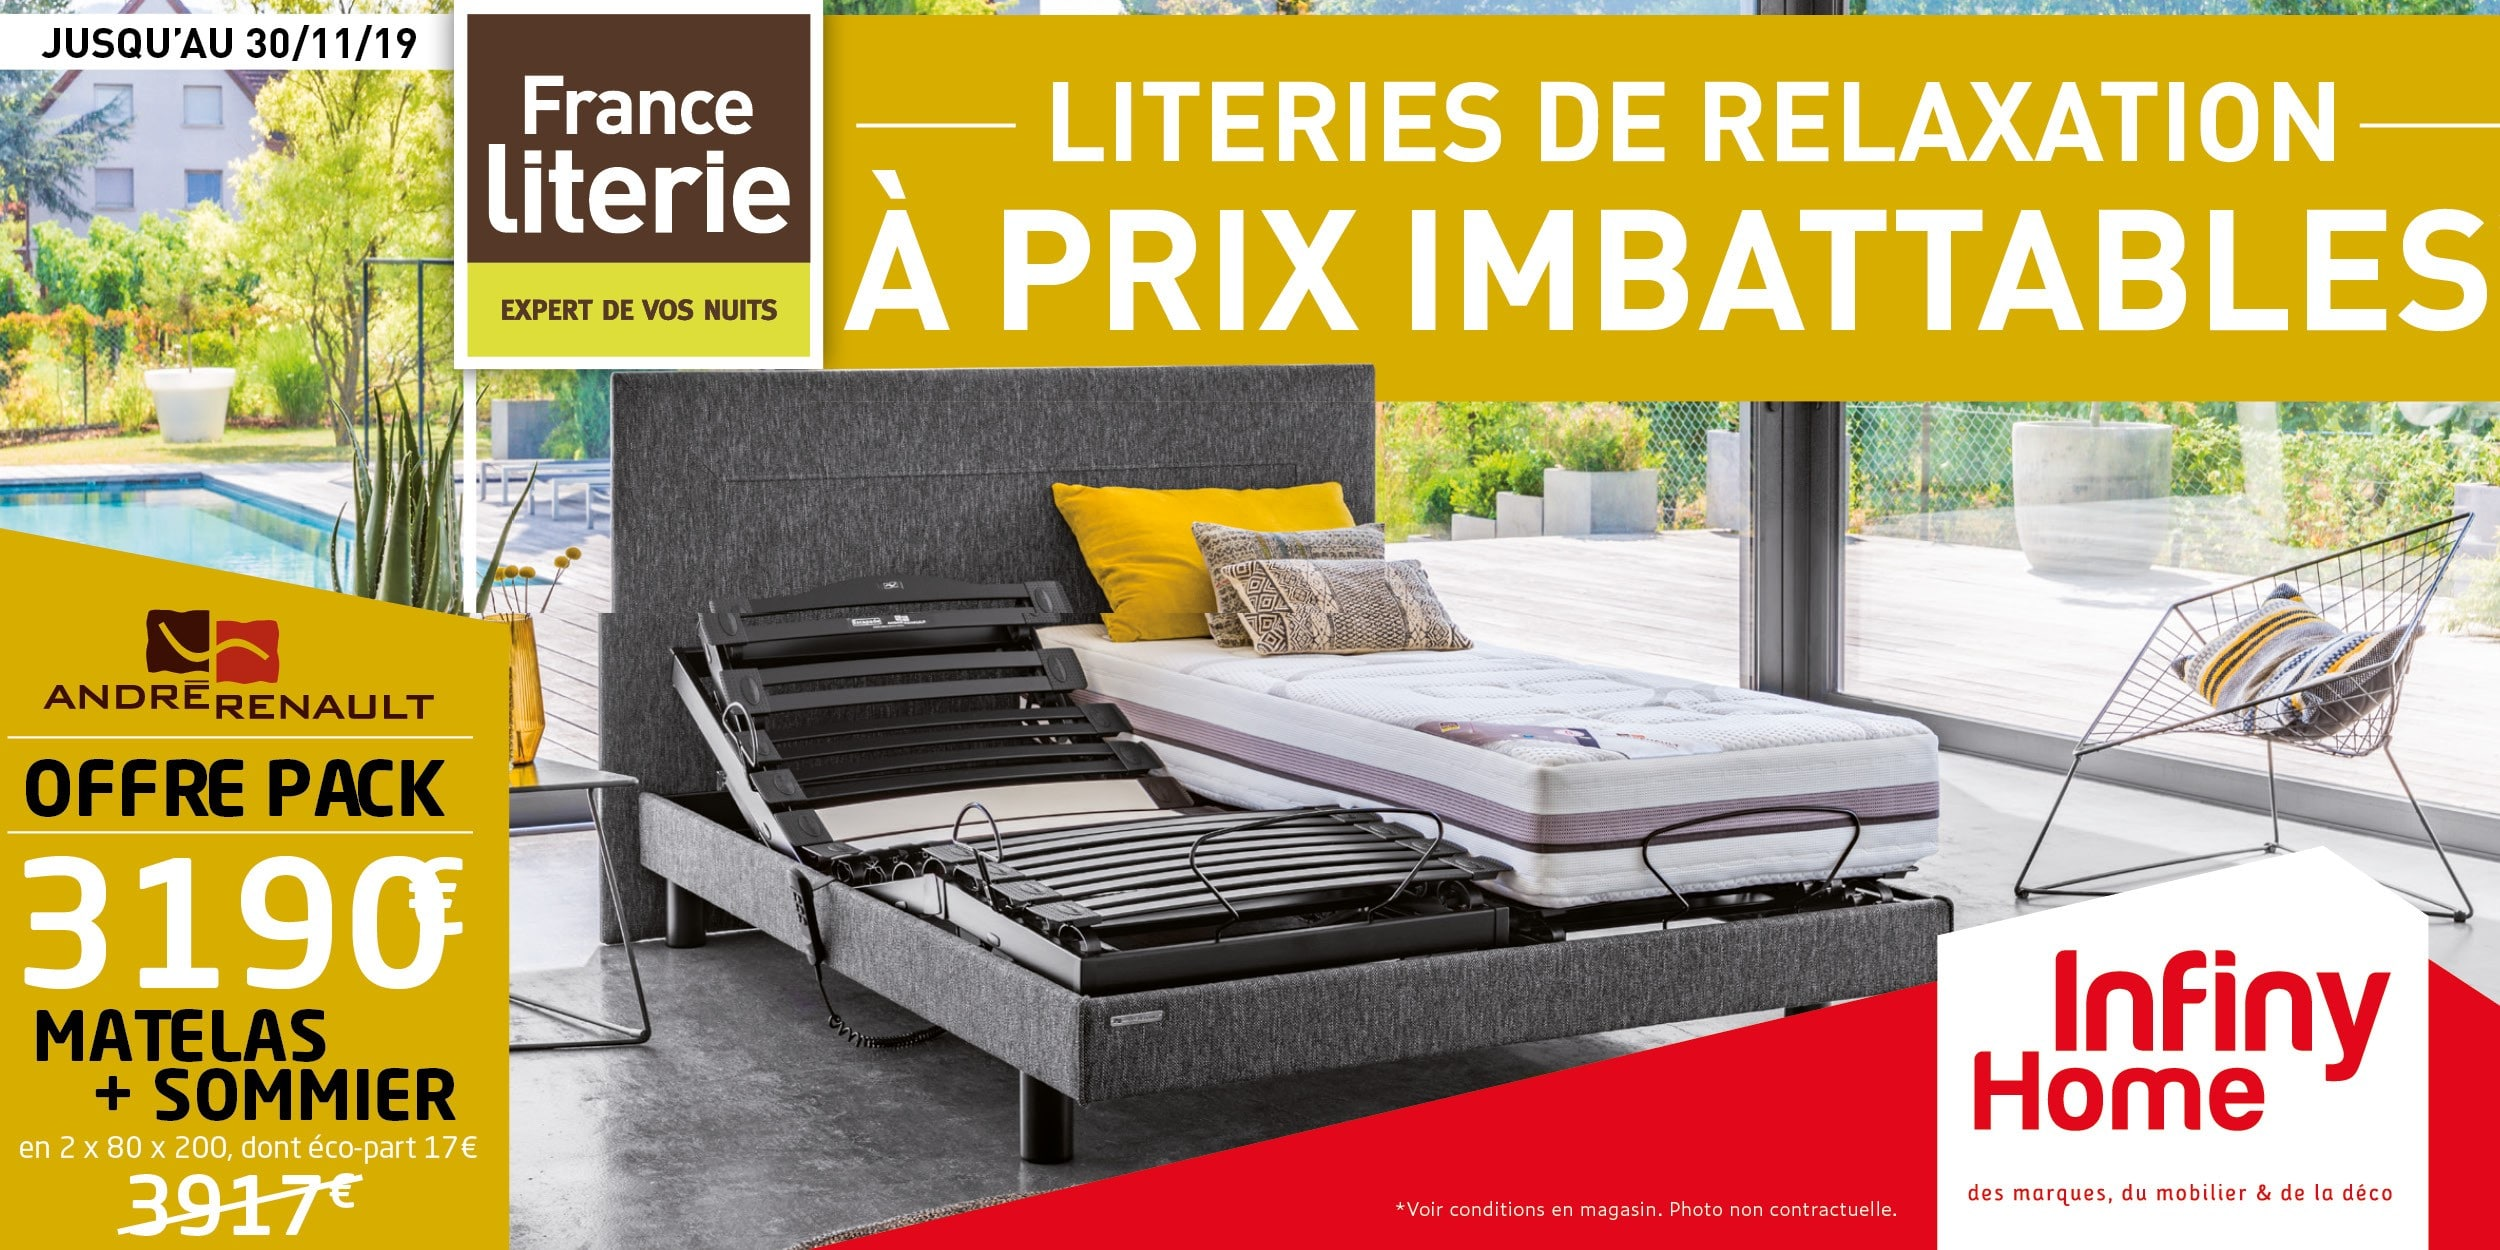 France Literie relaxation à prix imbattables